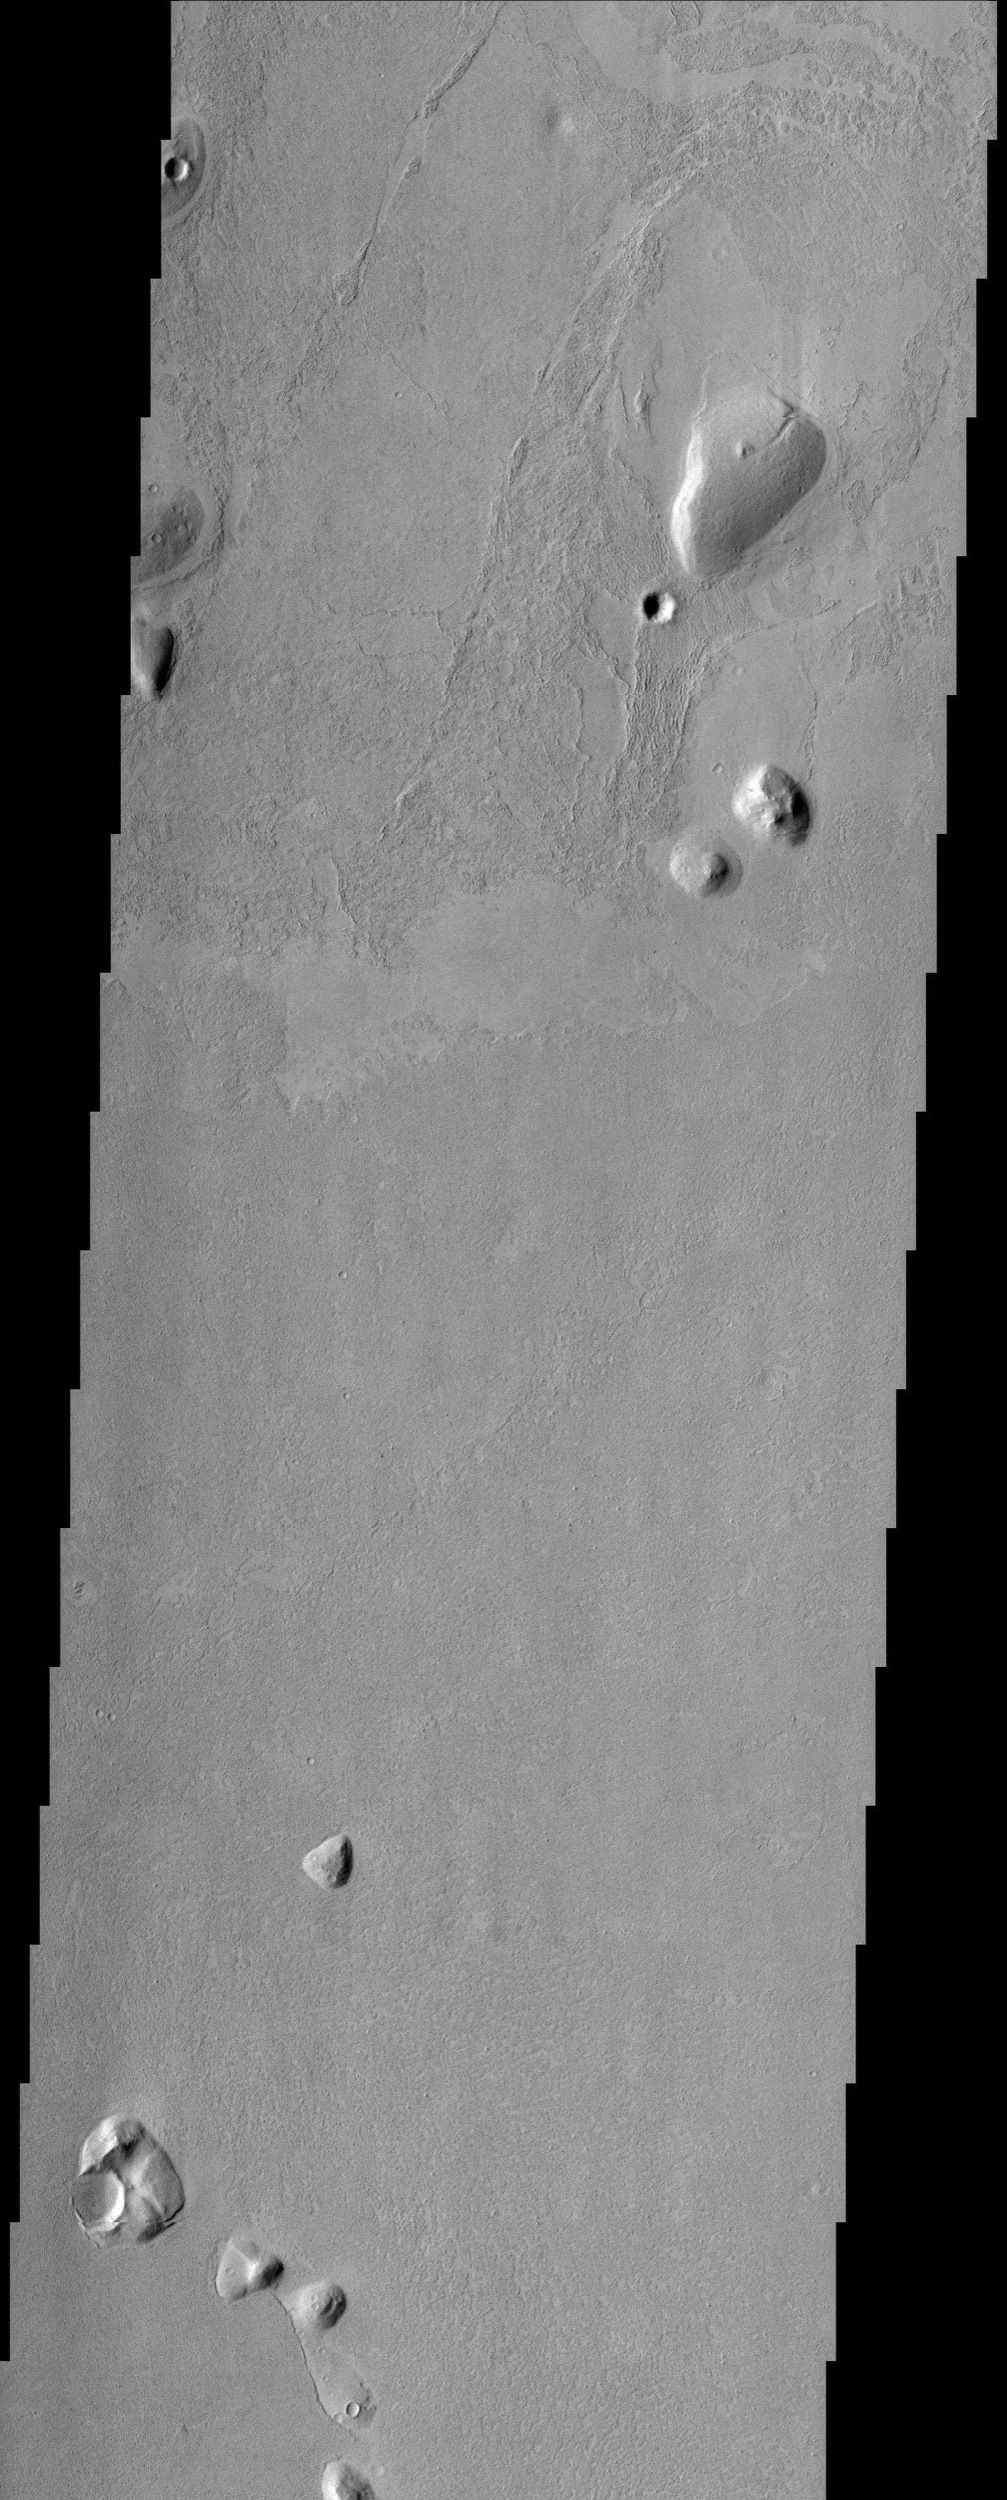 Islands of older high-standing terrain rise above a sea of relatively young, platy lava flows between two of the largest volcanoes in the solar system in this image from NASA's Mars Odyssey spacecraft.